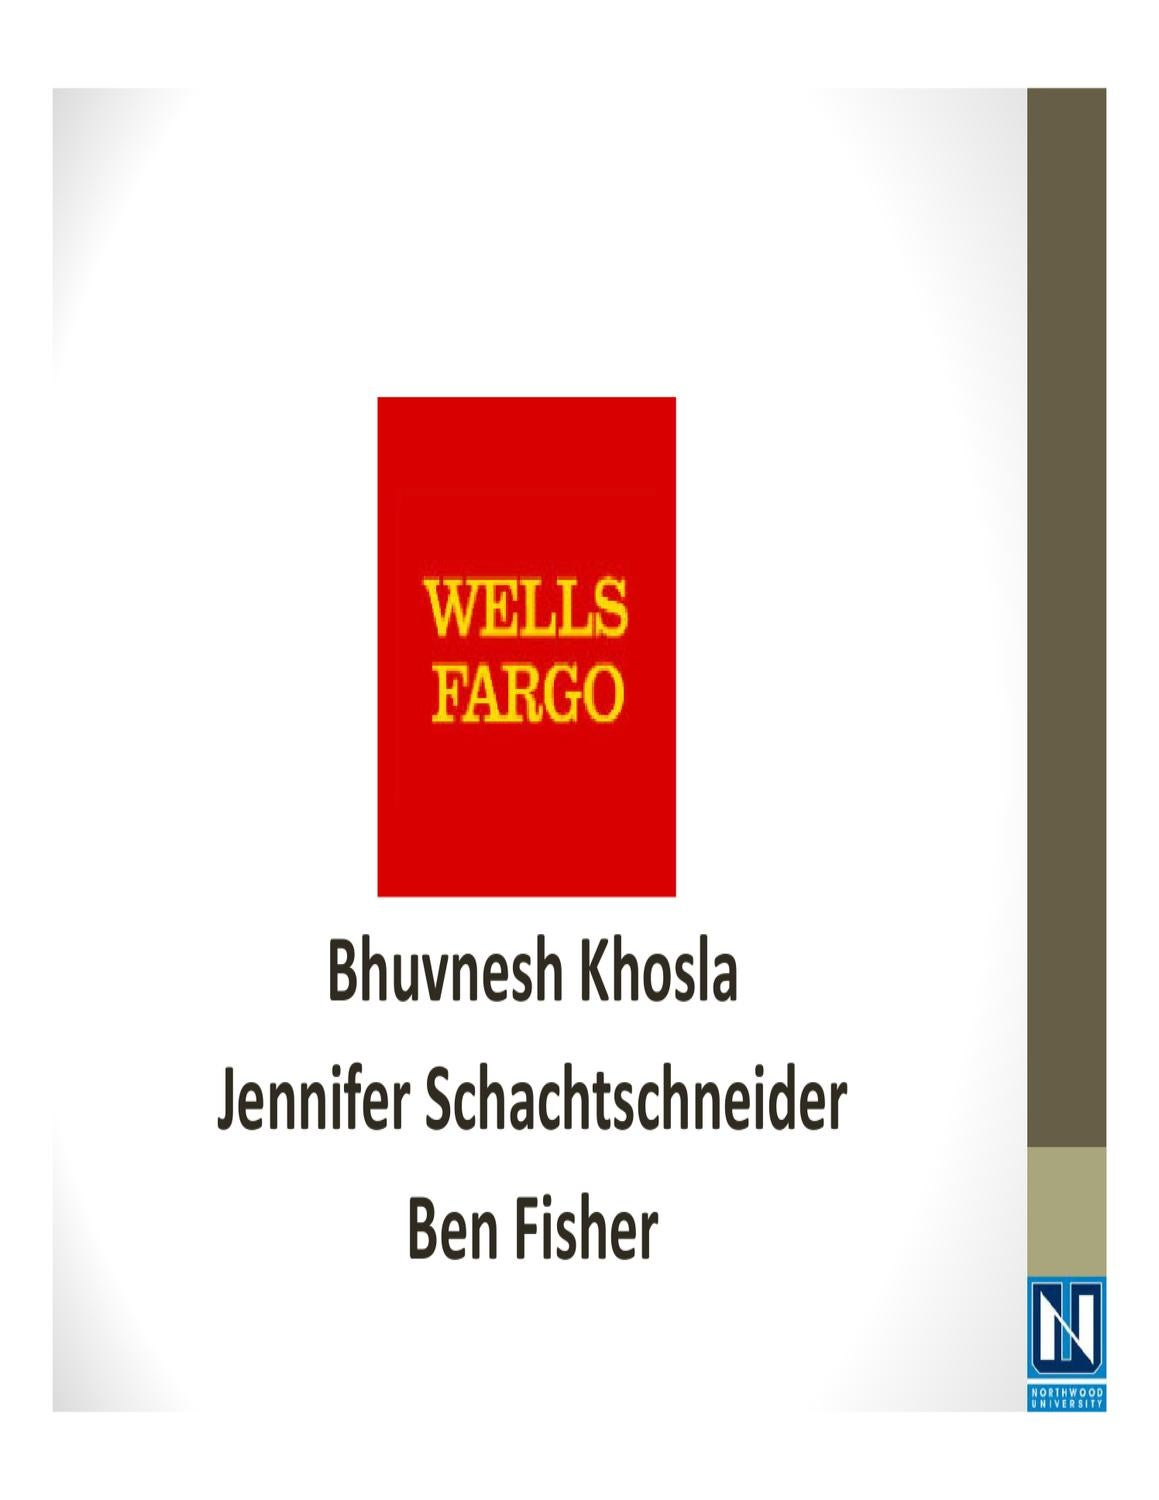 wells fargo case solution strategic management Home essays wells fargo ofs case wells fargo ofs case strategic management harvard case solution & analysis wells fargo.